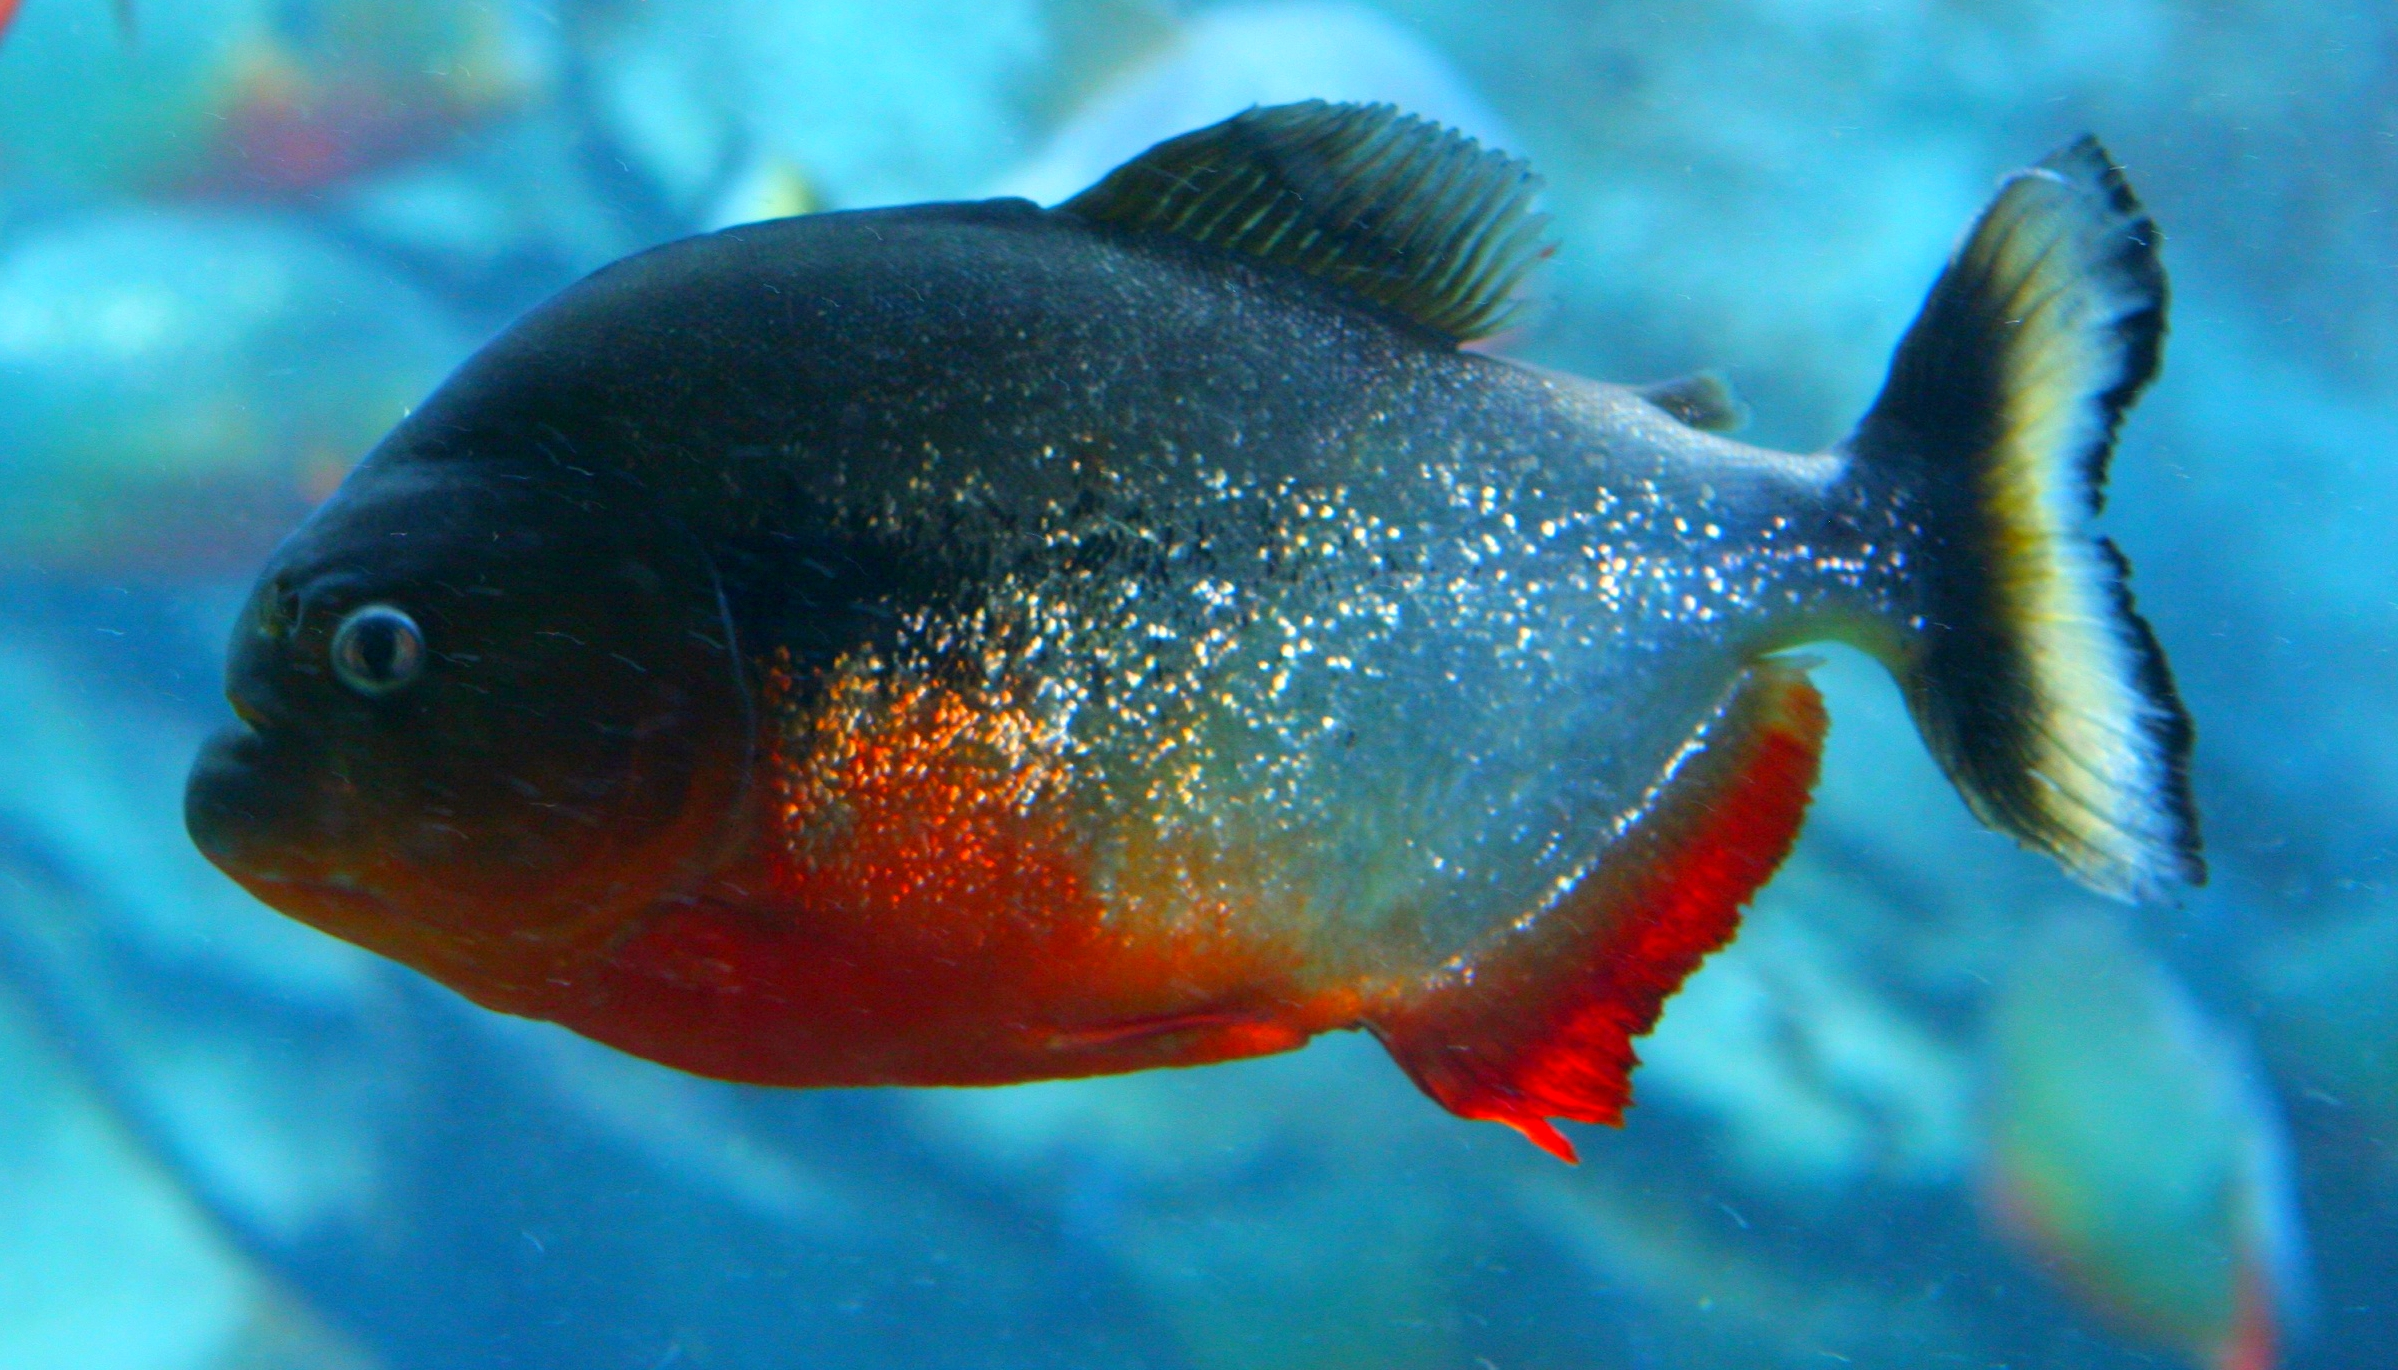 Piranha Fish Photo And Wallpaper Cute Piranha Fish Pictures